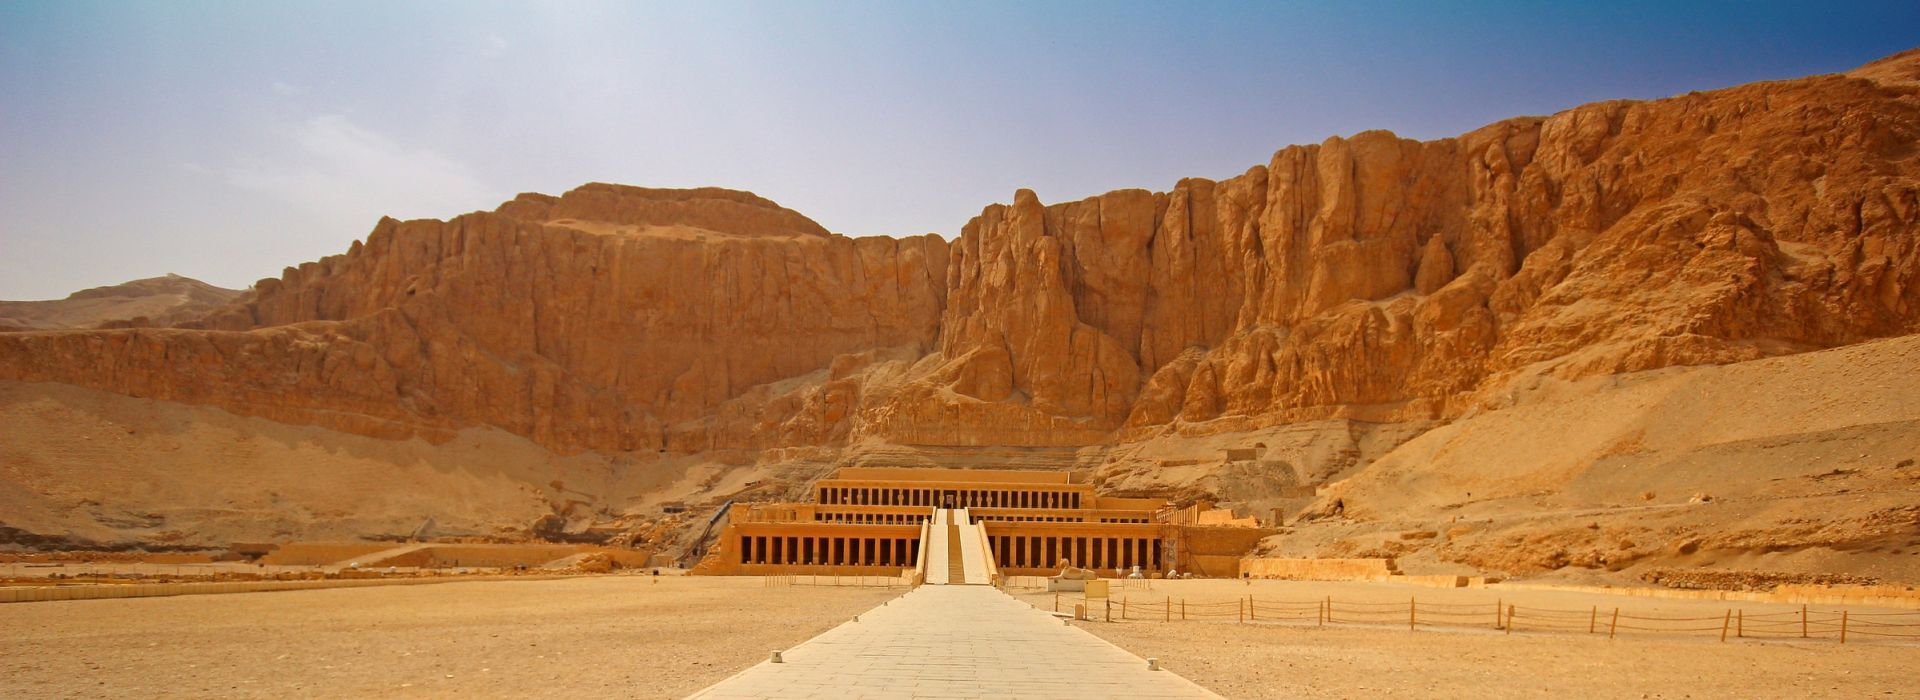 Sightseeing, attractions, culture and history Tours in Luxor